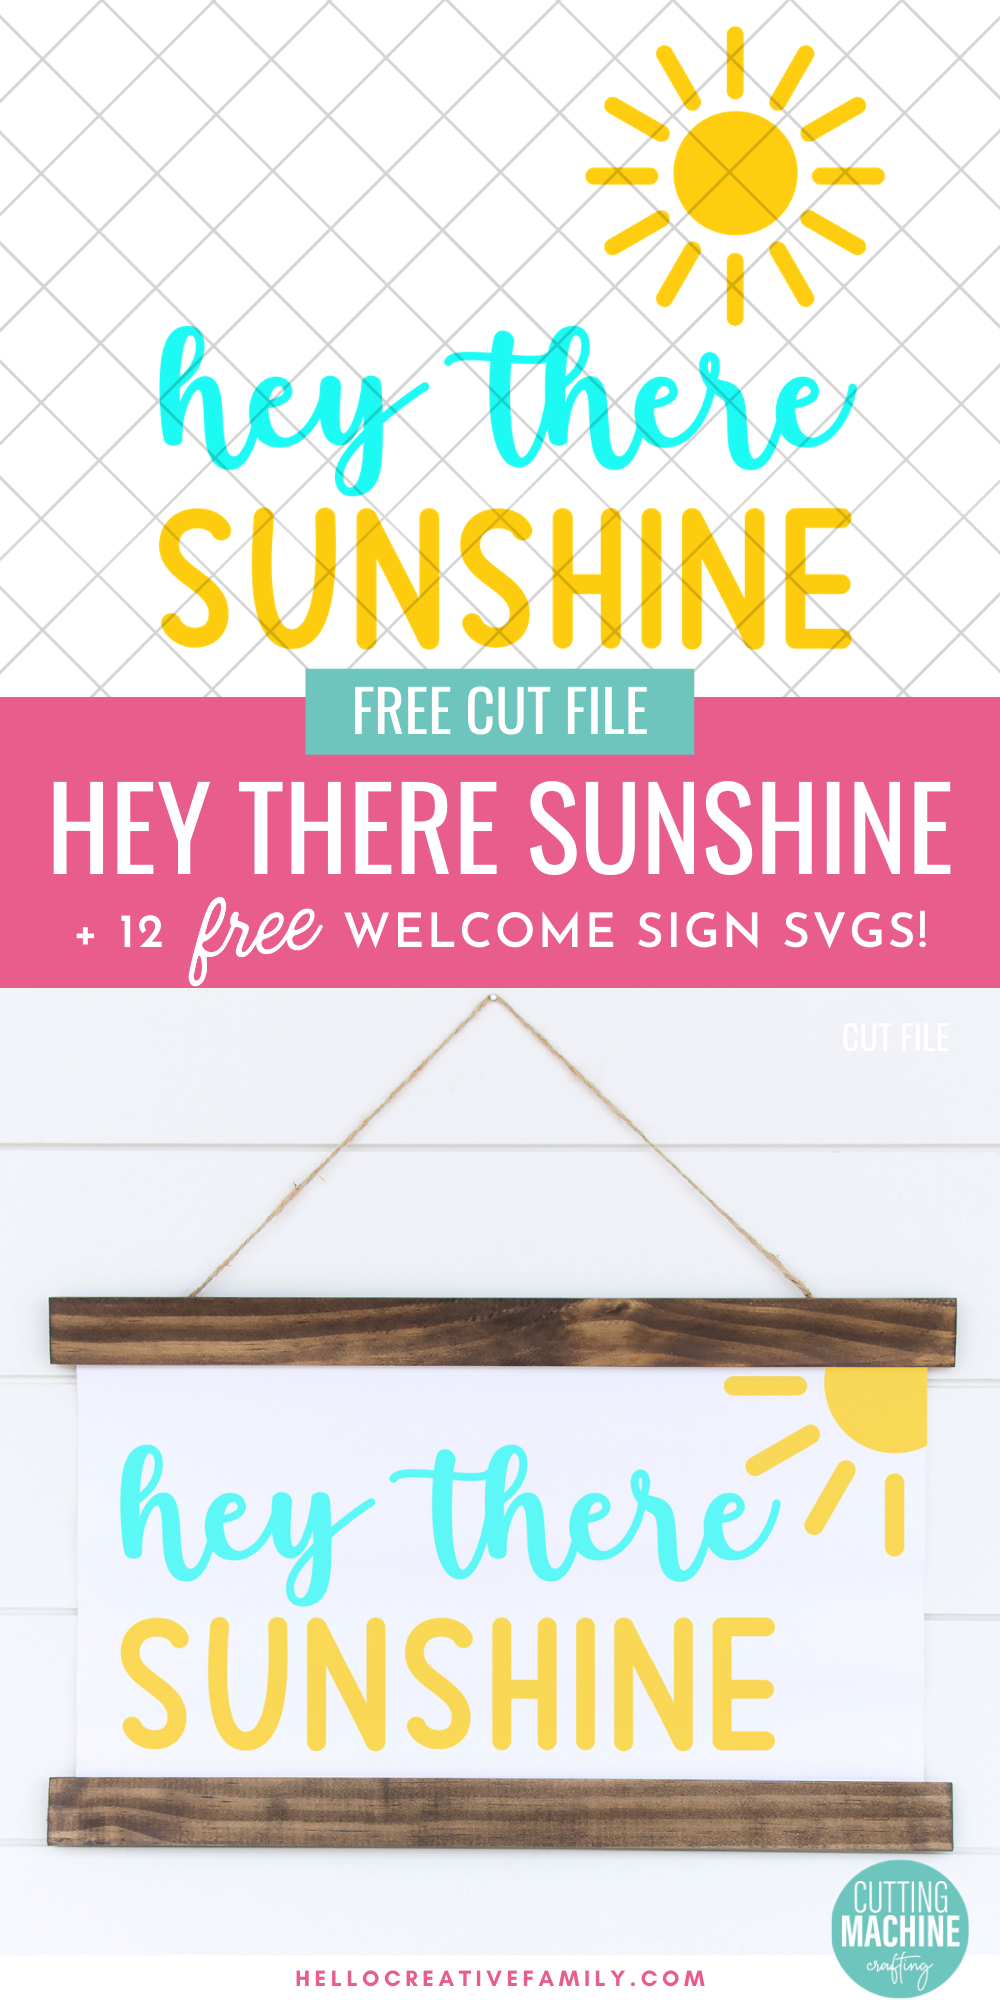 Spread a bit of crafty happiness with this free Hey There Sunshine Cut File! So cute for DIY signs and beach totes! Download all 12 free welcome sign svgs for crafting with your Cricut Maker, Cricut Explore Air 2, Cricut Joy or other cutting machine! Make great handmade housewarming gifts!